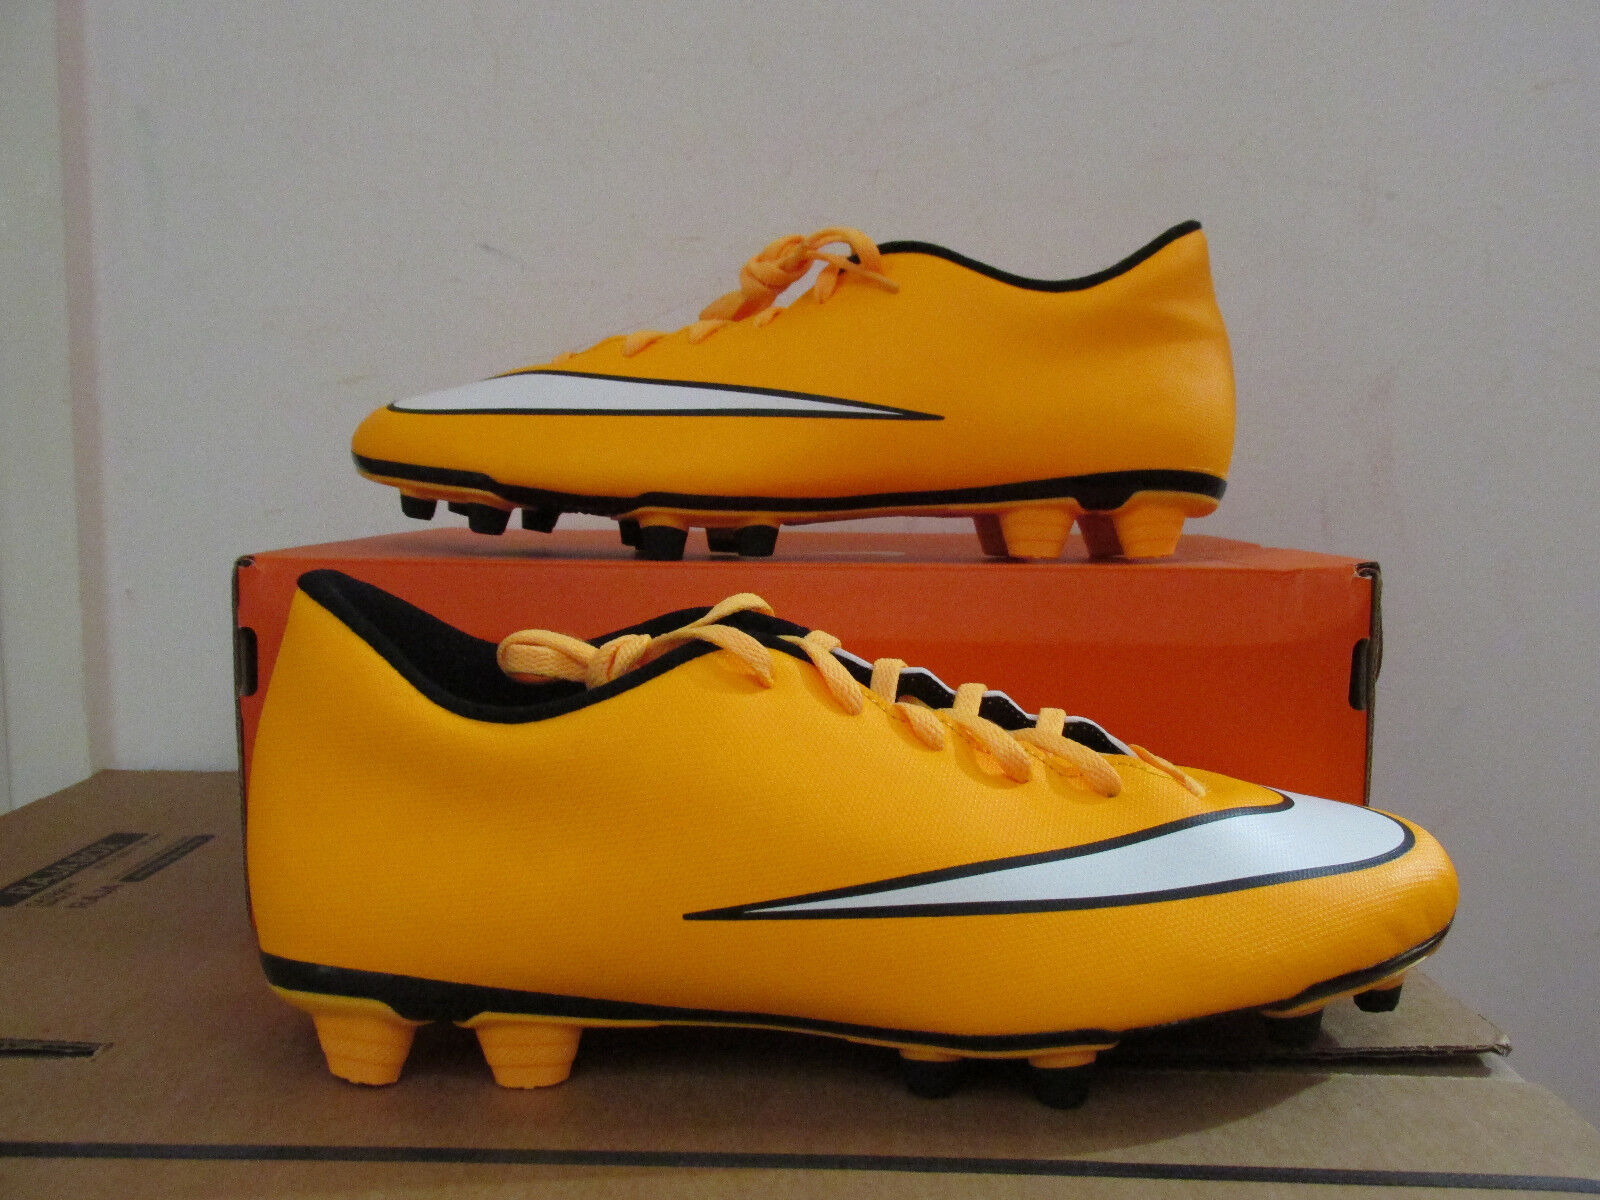 Nike mercurial vortex FG football boots 651647 800 soccer firm CLEARANCE